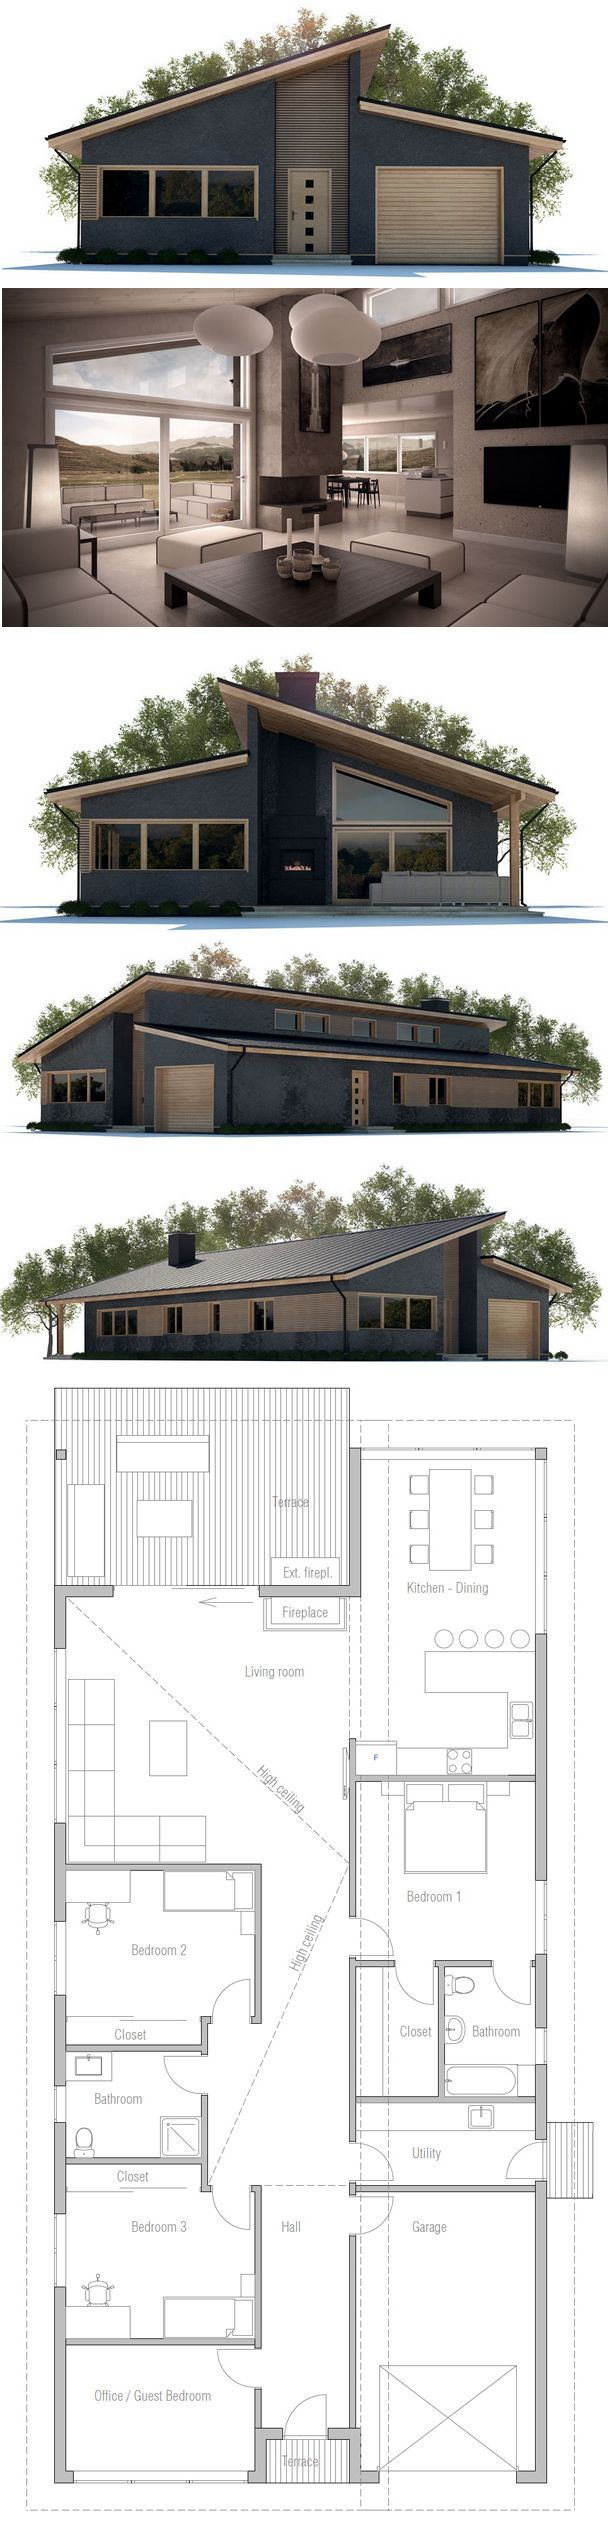 129 best house plans small energy efficient affordable images on